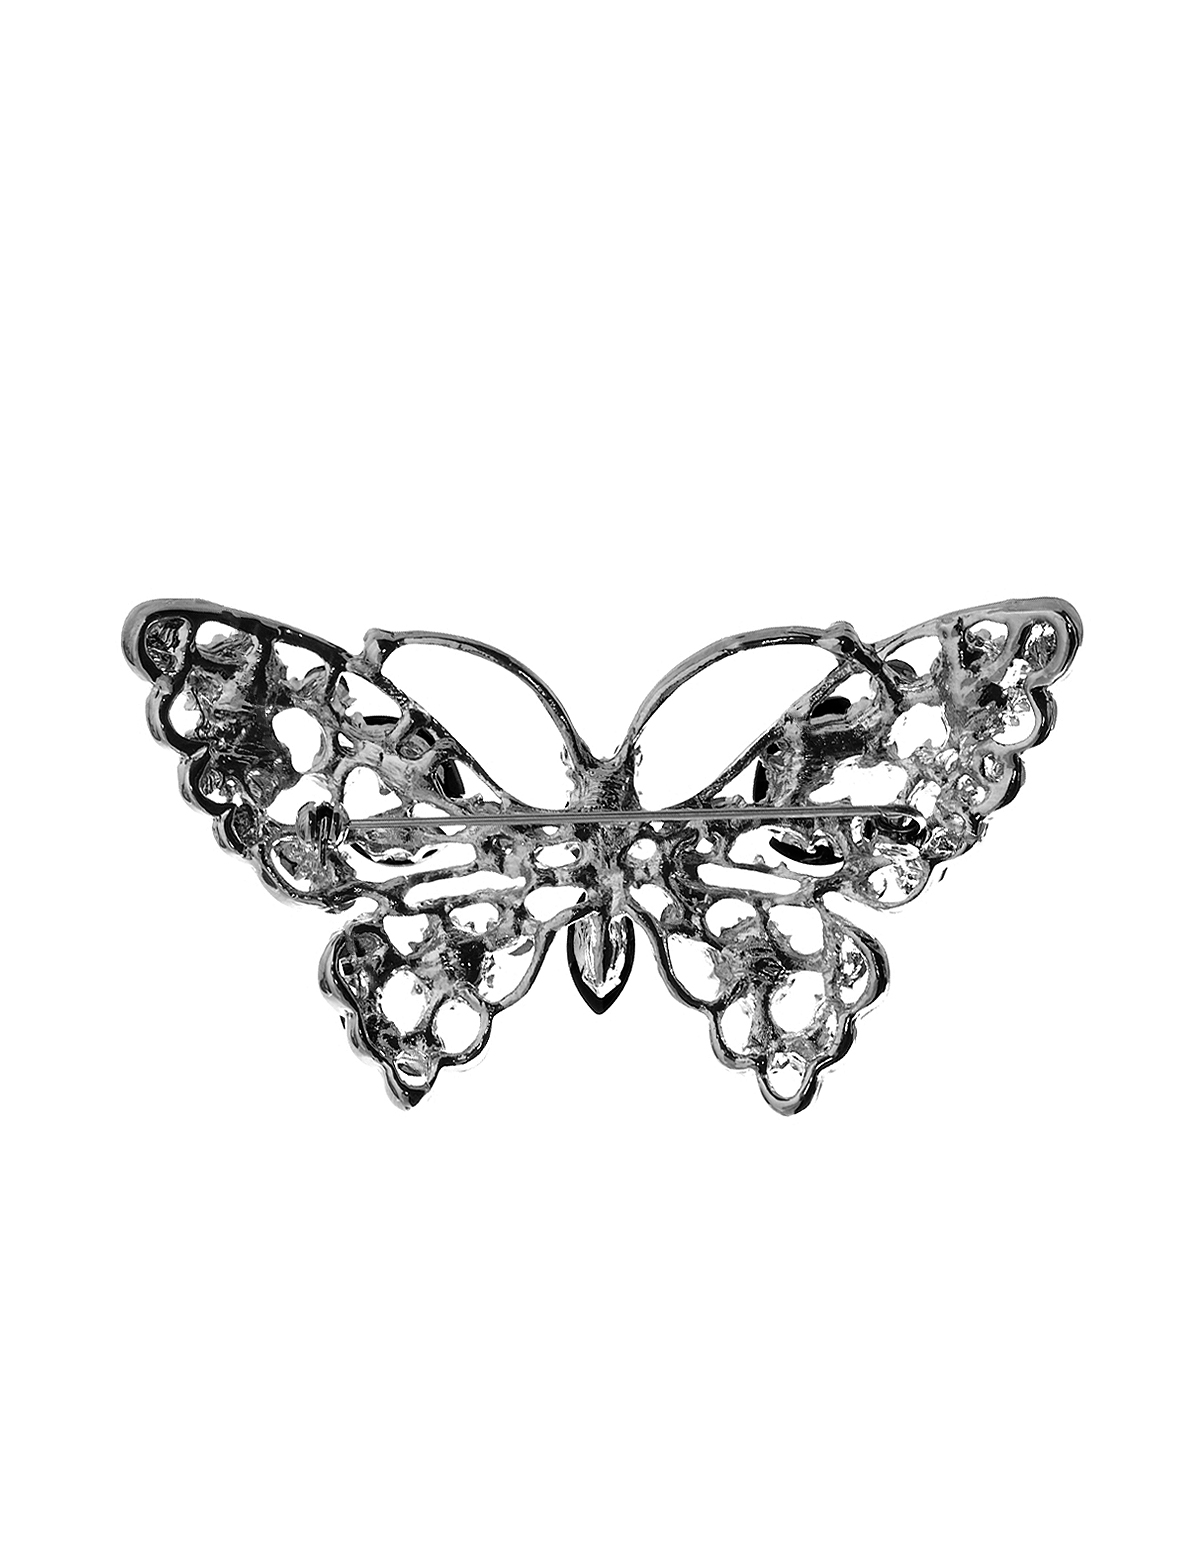 crop art image cindy chao black label shop jewel the upscale product subsampling masterpiece brooch bowtie bro false scale jewellery